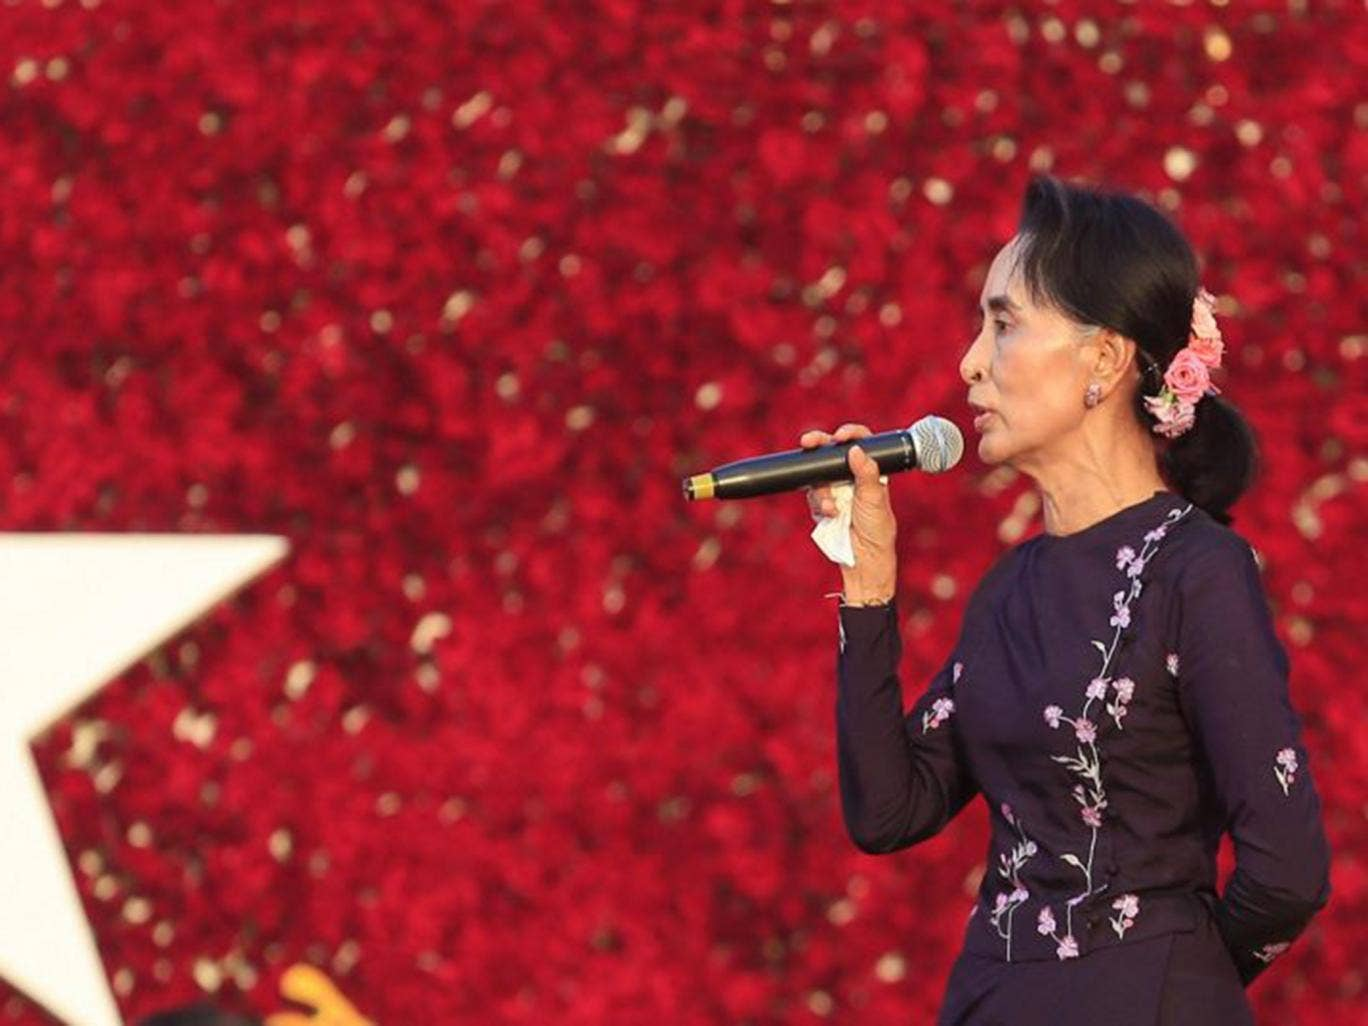 est some photos aung san suu kyi  the national league for democracy nld led by myanmar opposition leader aung san suu kyi is campaigning the slogan time to change ahead of the